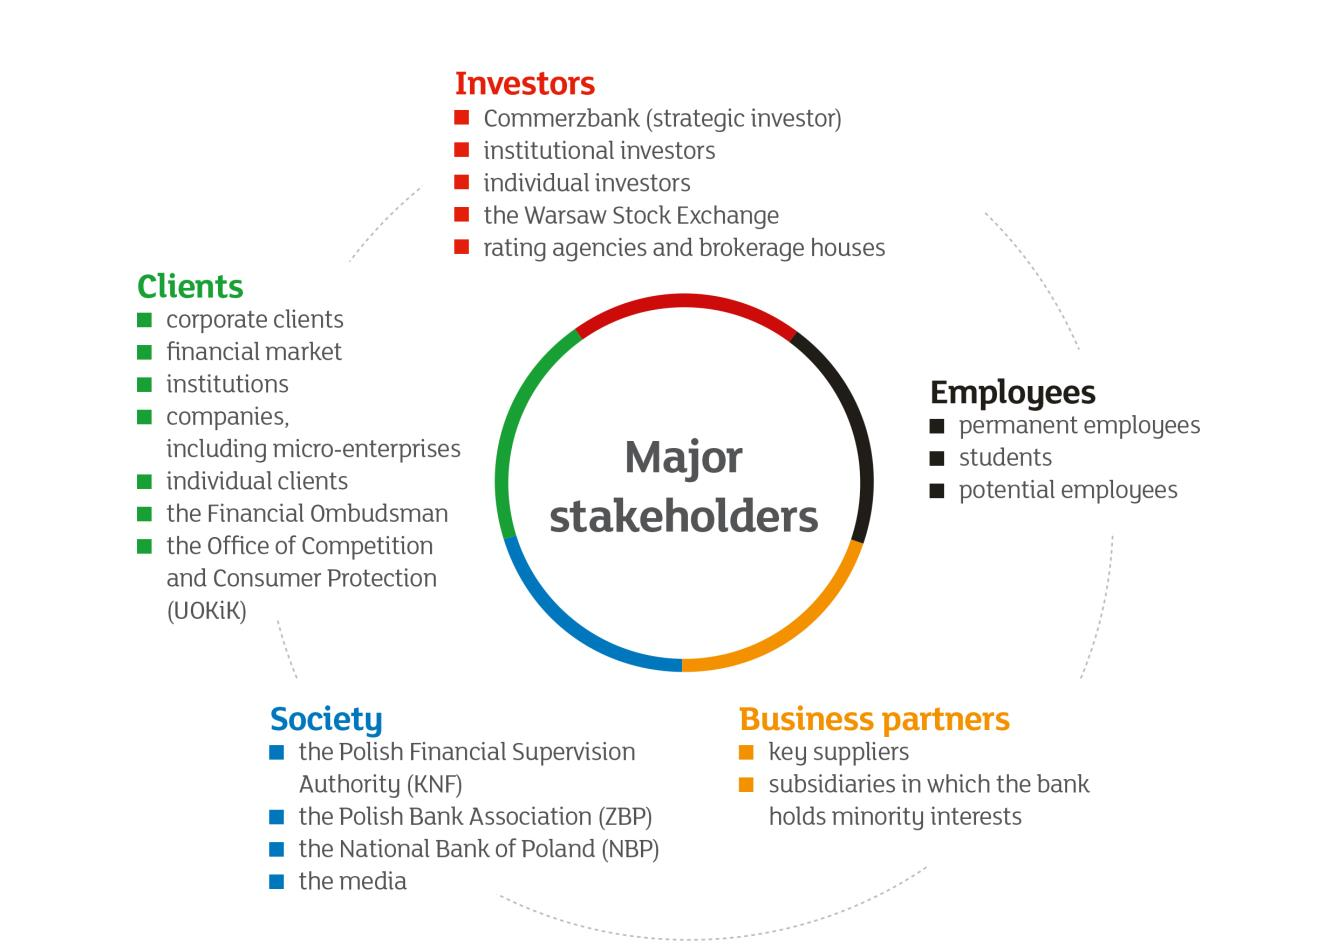 About mbank group g4 26 the identification and assessment of stakeholders conducted in mid 2015 revealed the major stakeholders in the largest categories these are reheart Image collections